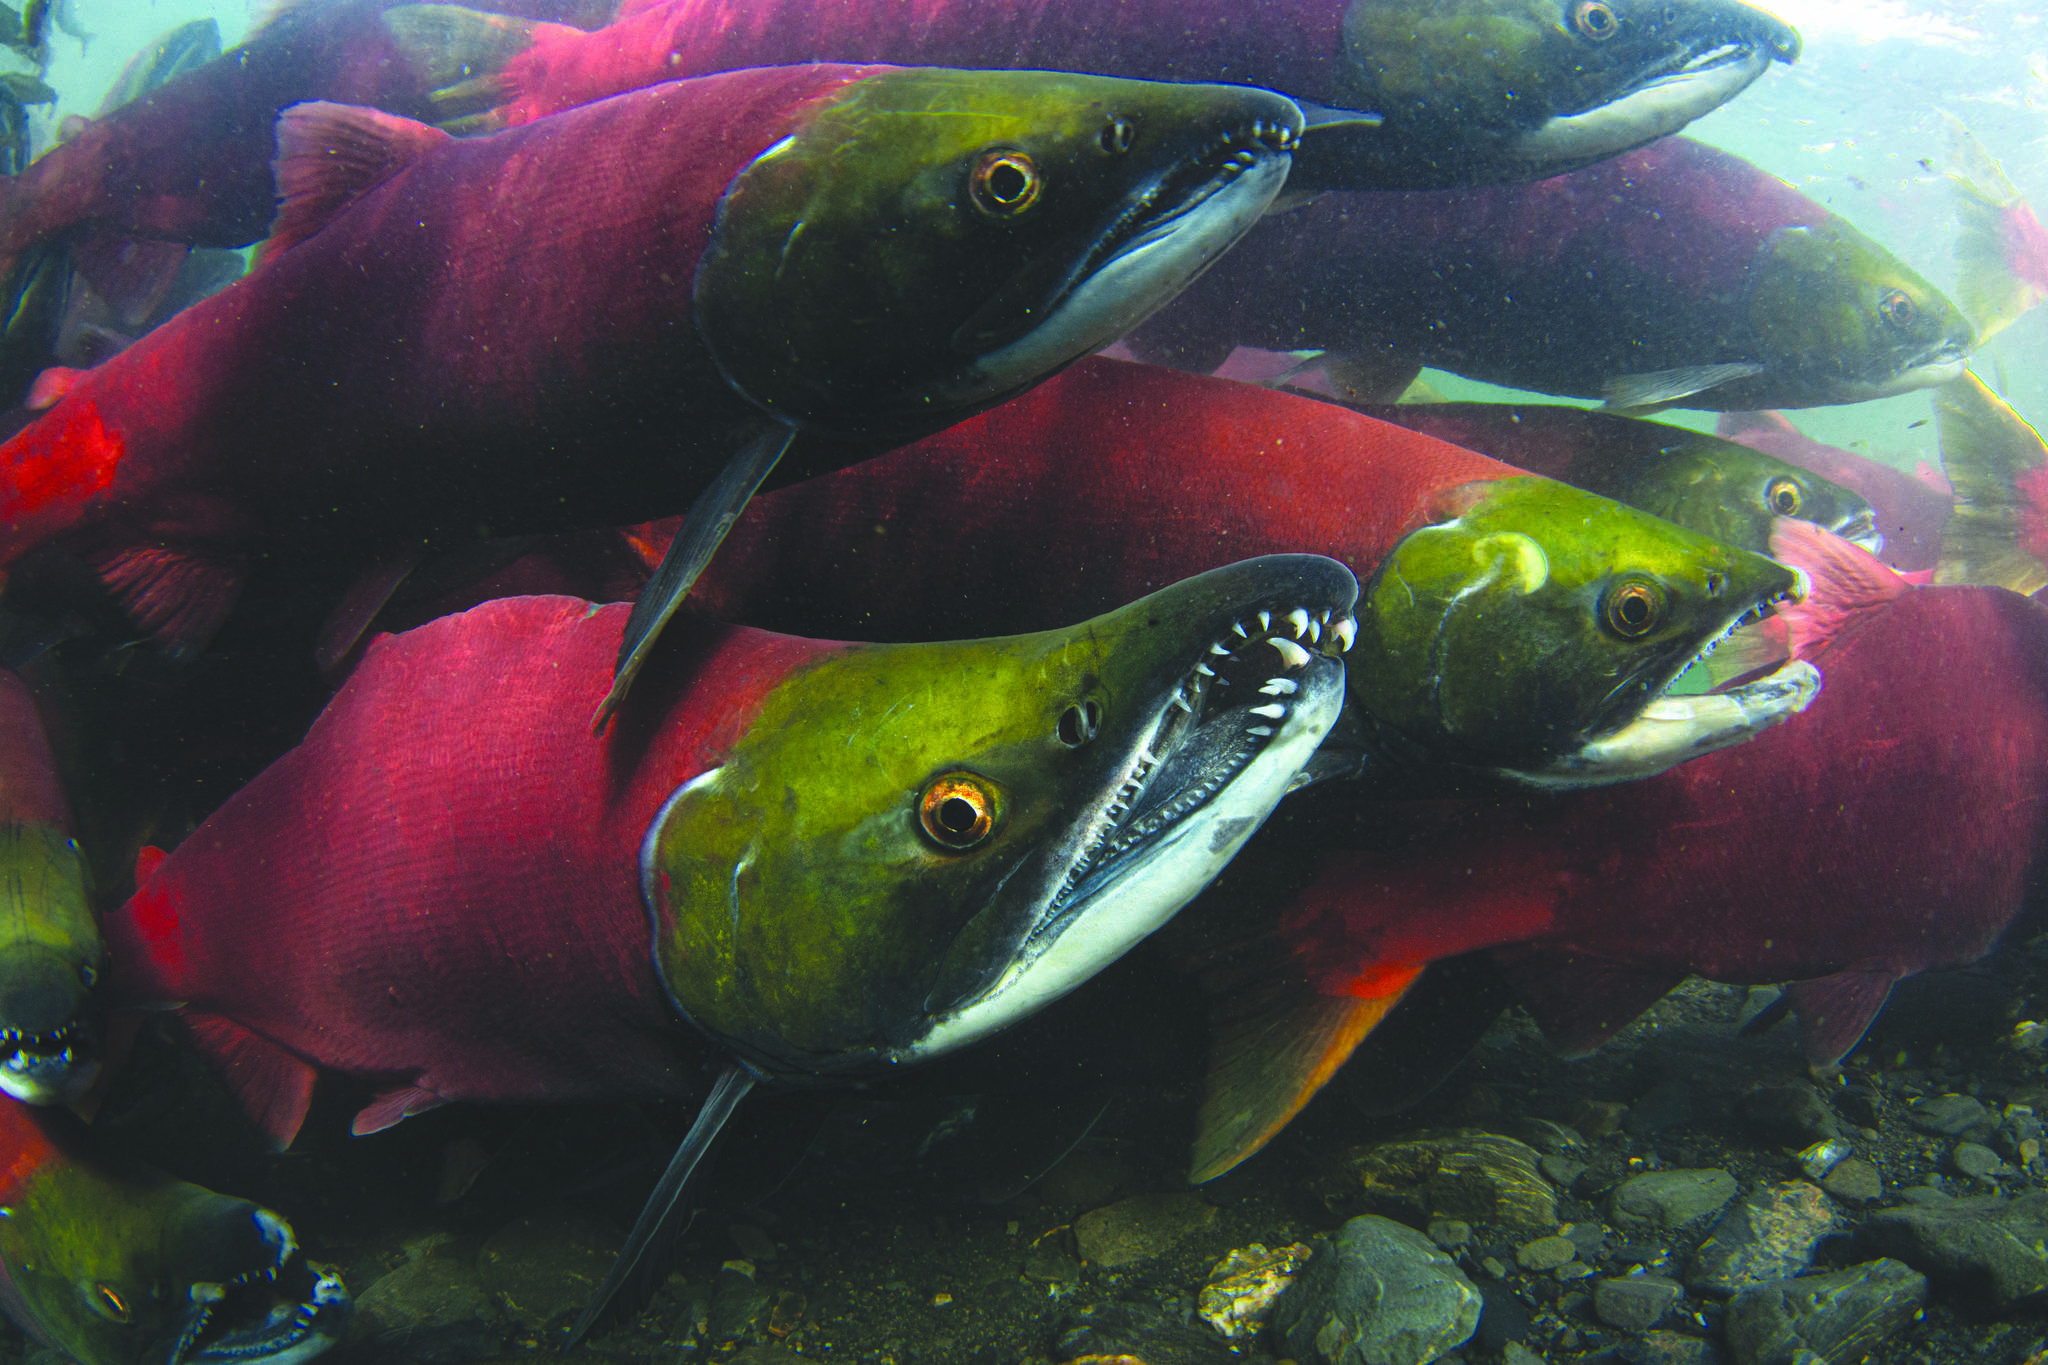 Under the latest round of funding under the British Columbia Salmon Restoration and Innovation Fund four B.C. salmon conservation projects will share $4 million in financing over the next four years. (Photo supplied by Kenny Regan)